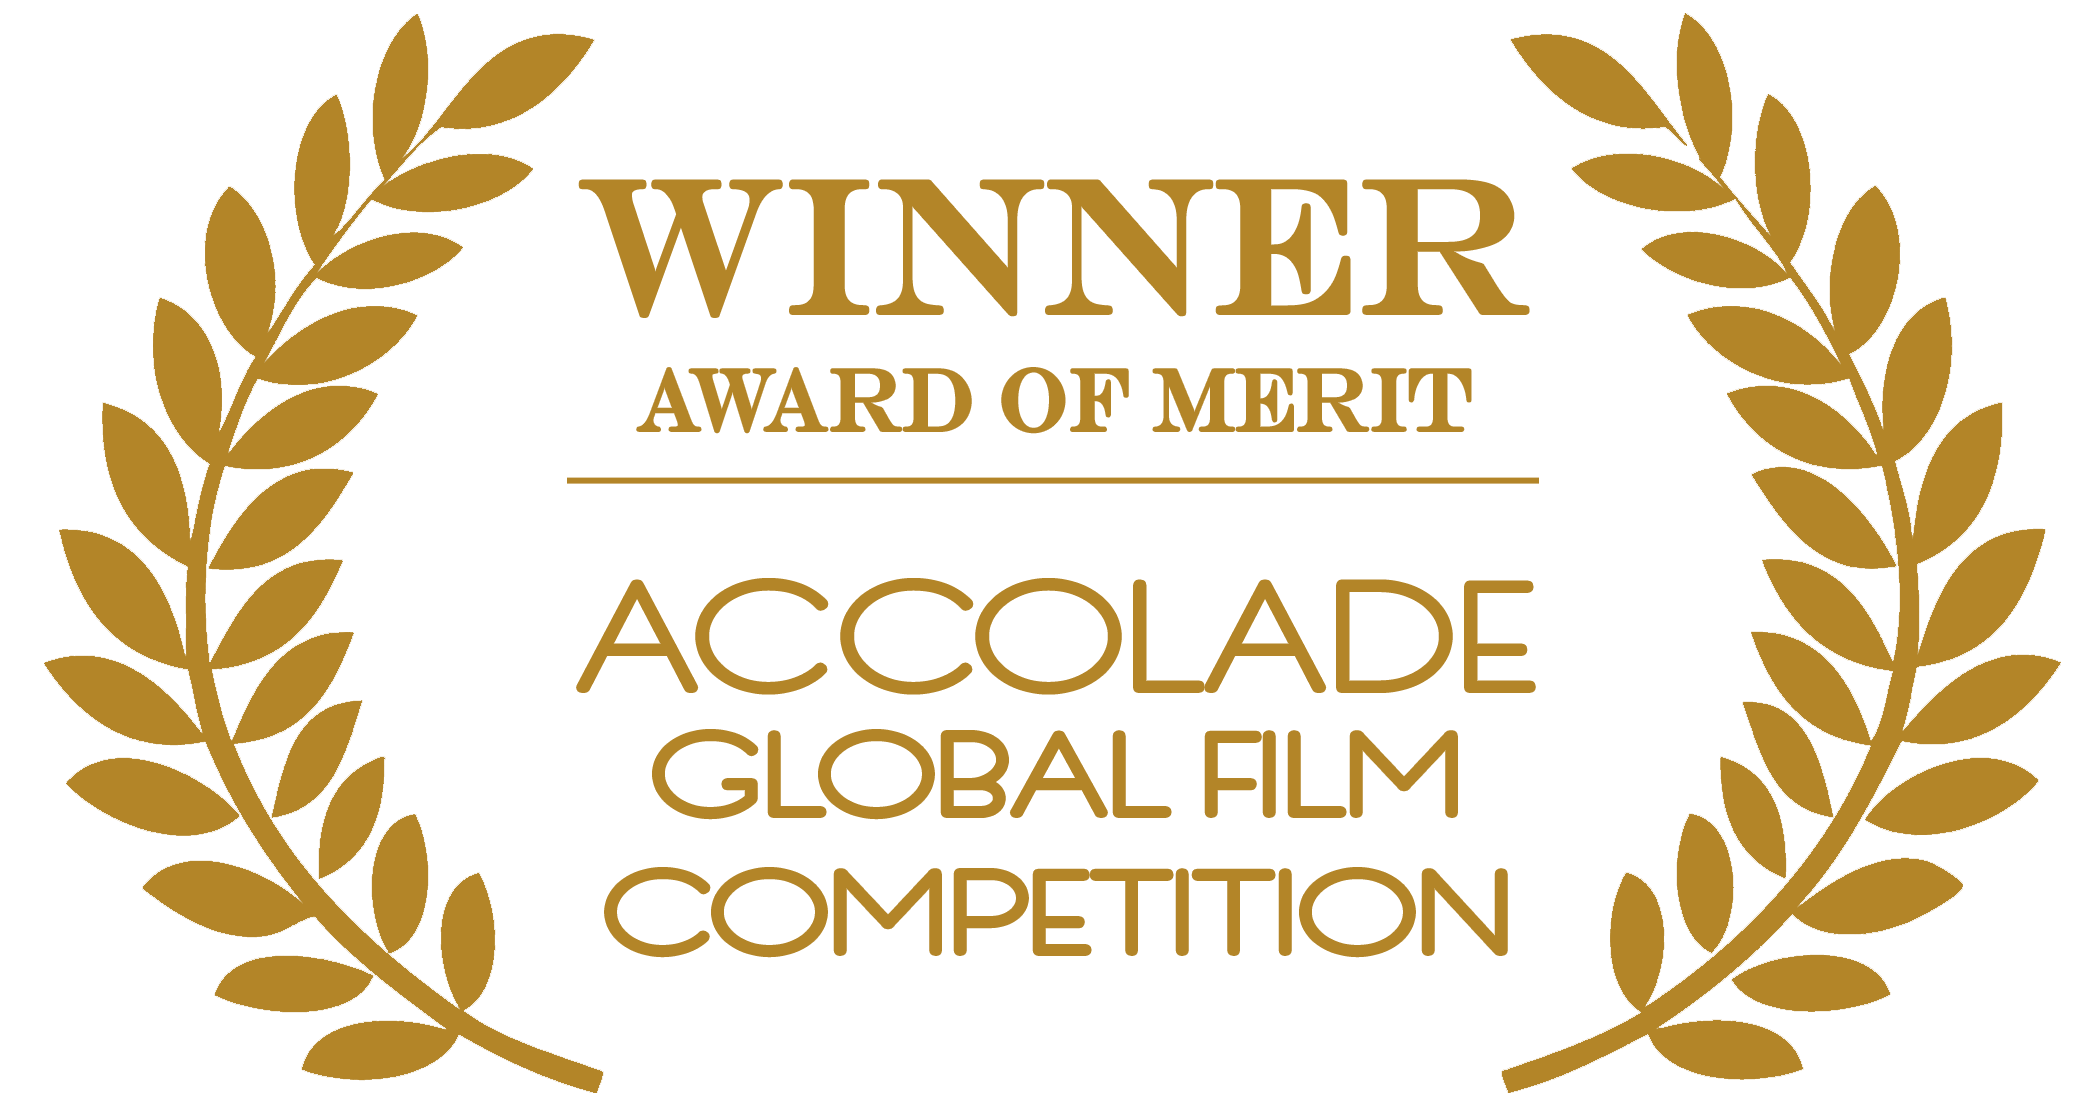 Accolade Award of Merit Laurel